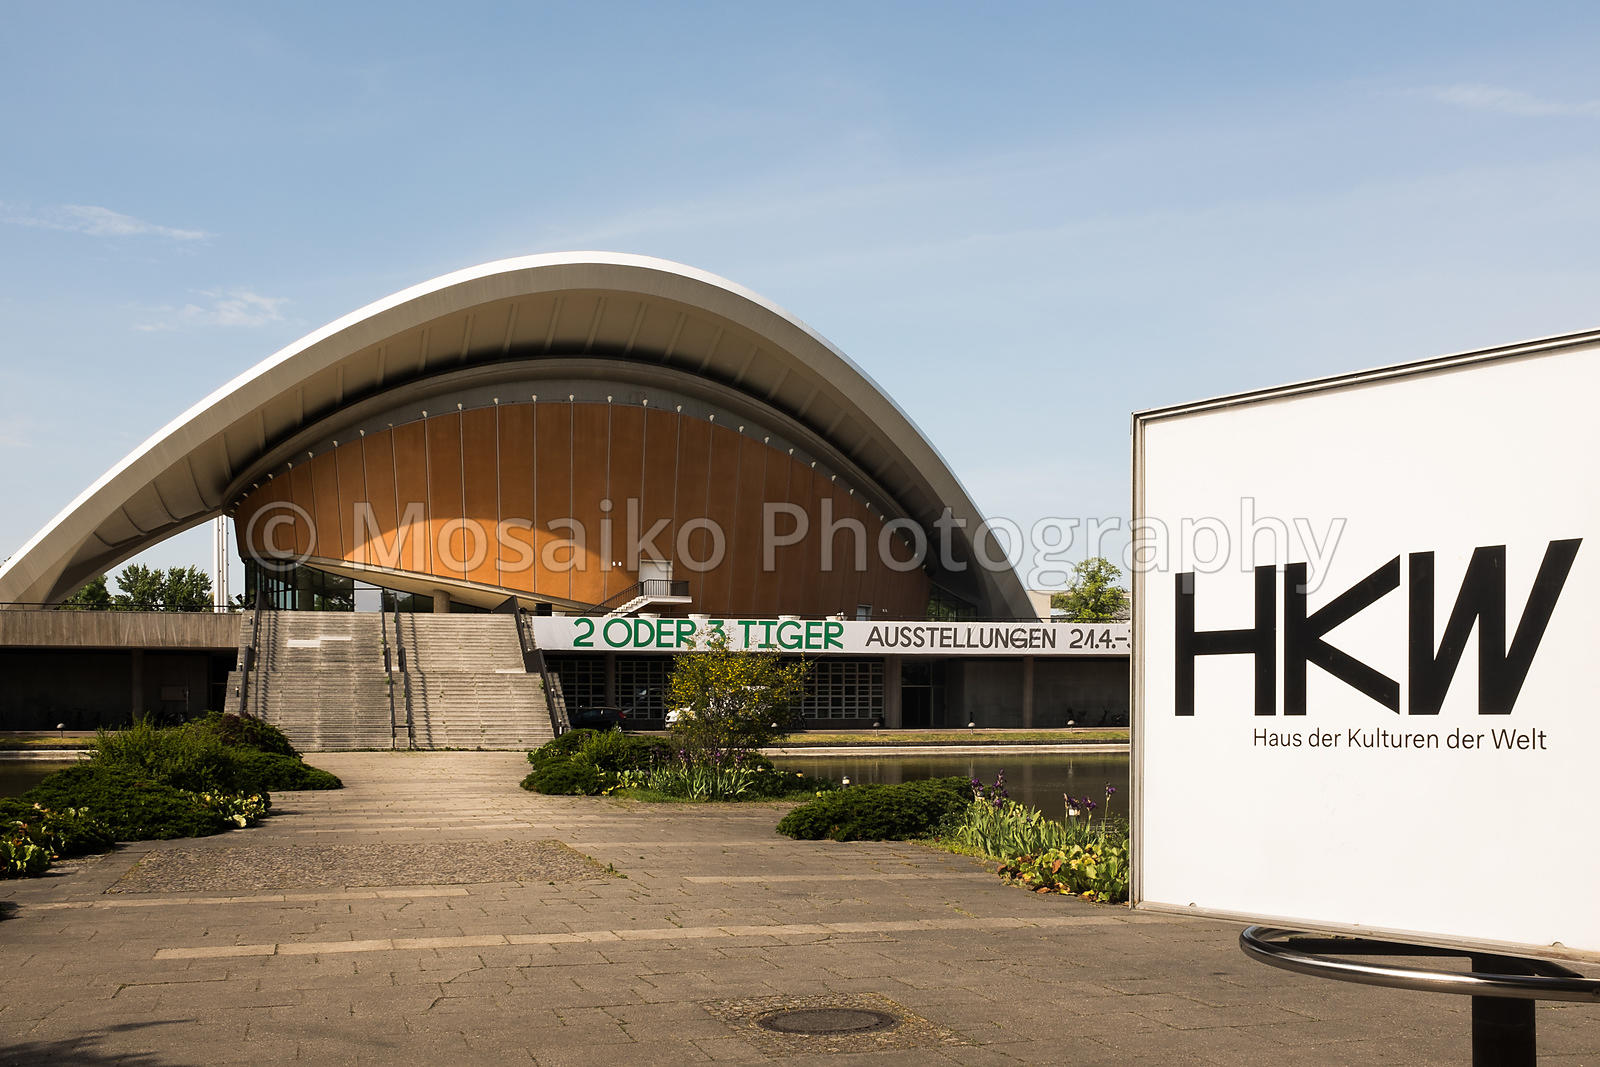 BERLIN, MAY 29TH: The Haus der Kulturen der Welt (HKW) (German for House of the World's Cultures) in Berlin on May 29th 2017.